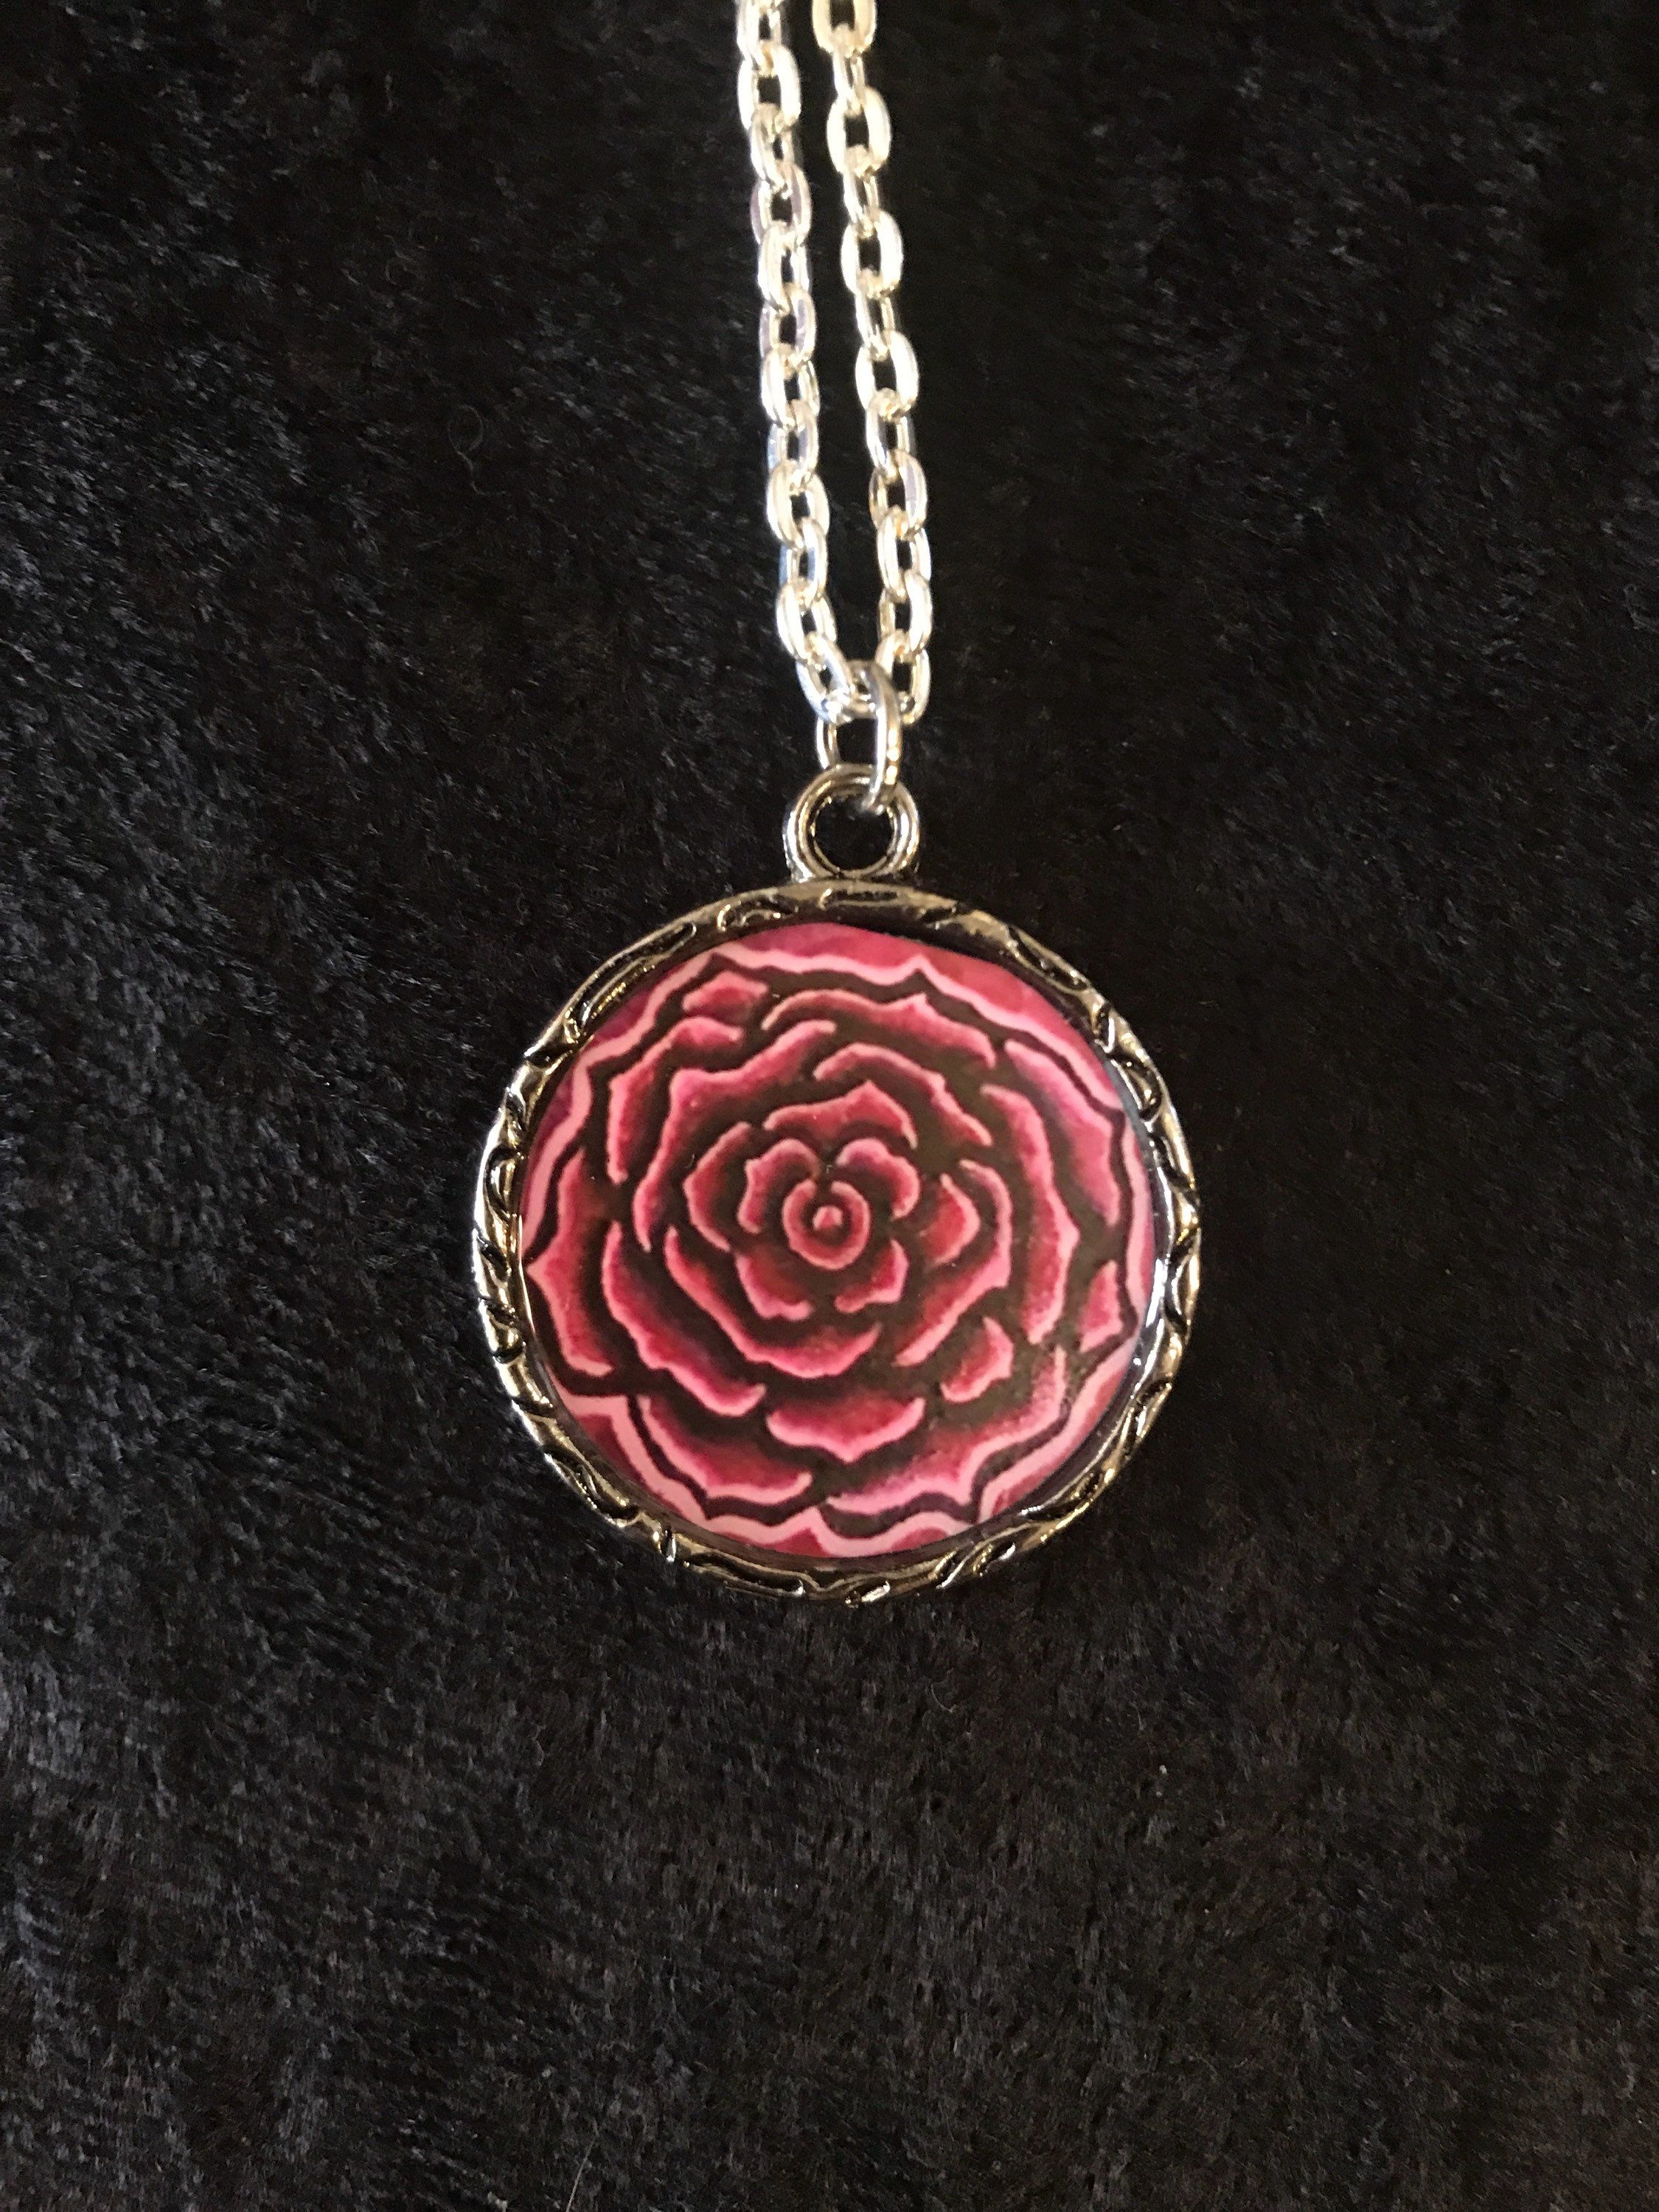 Pink Rose Pendant Necklace Pendant Necklace Pendants Jewelry